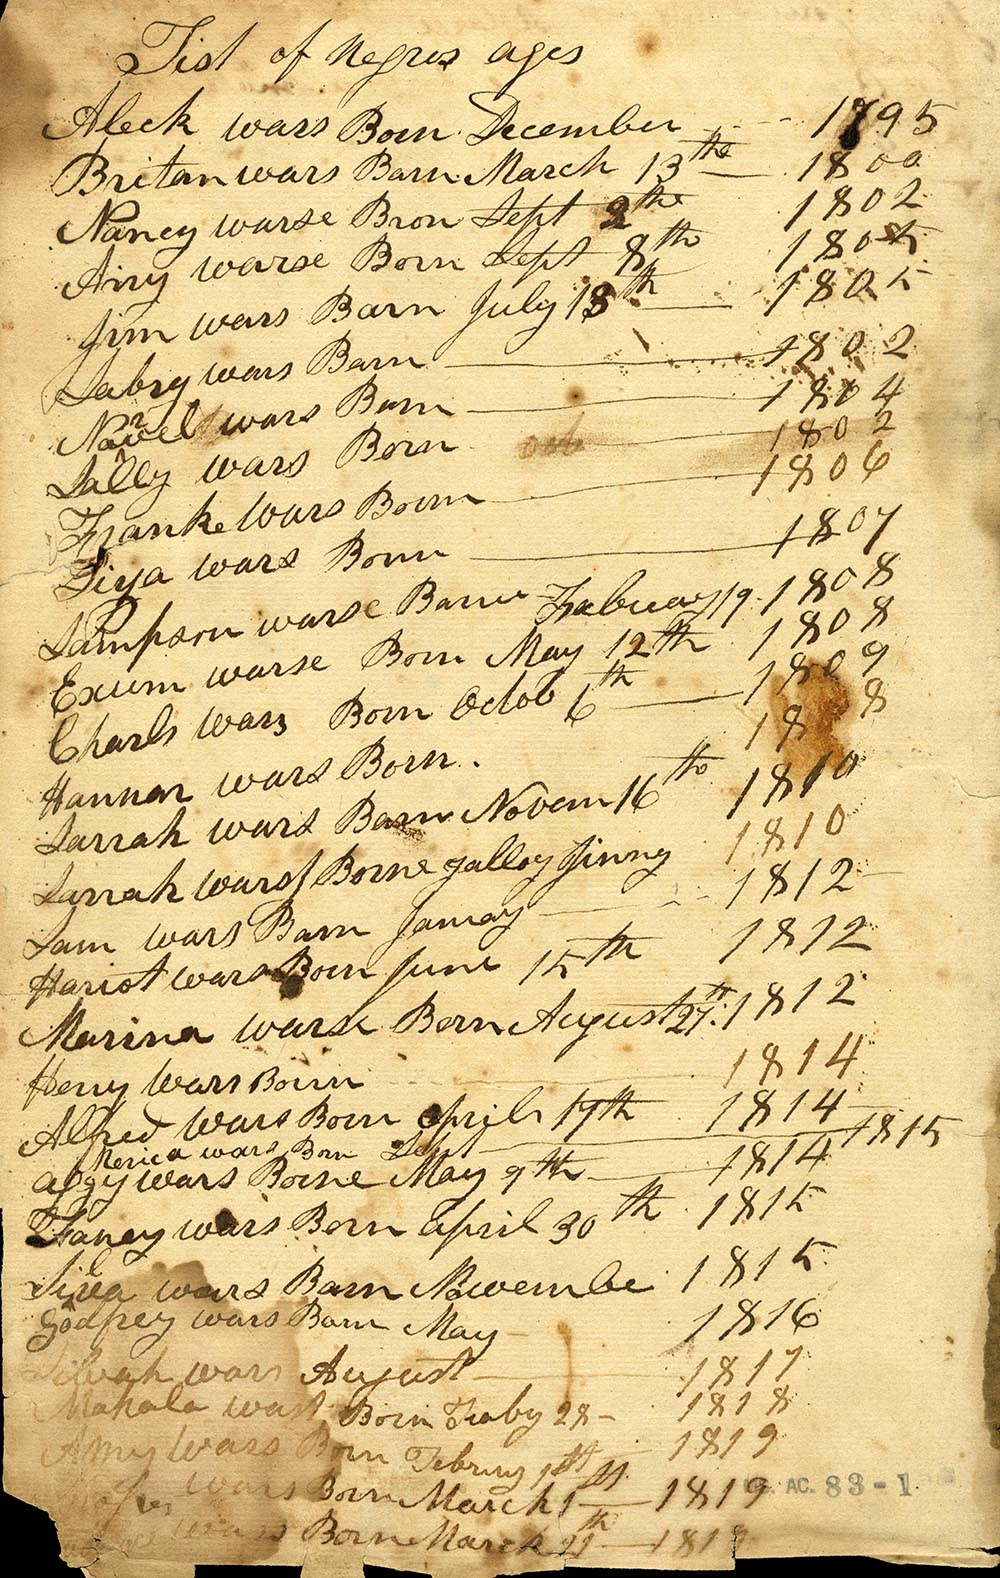 List of slave births at Wessyngton Plantation, Robertson County